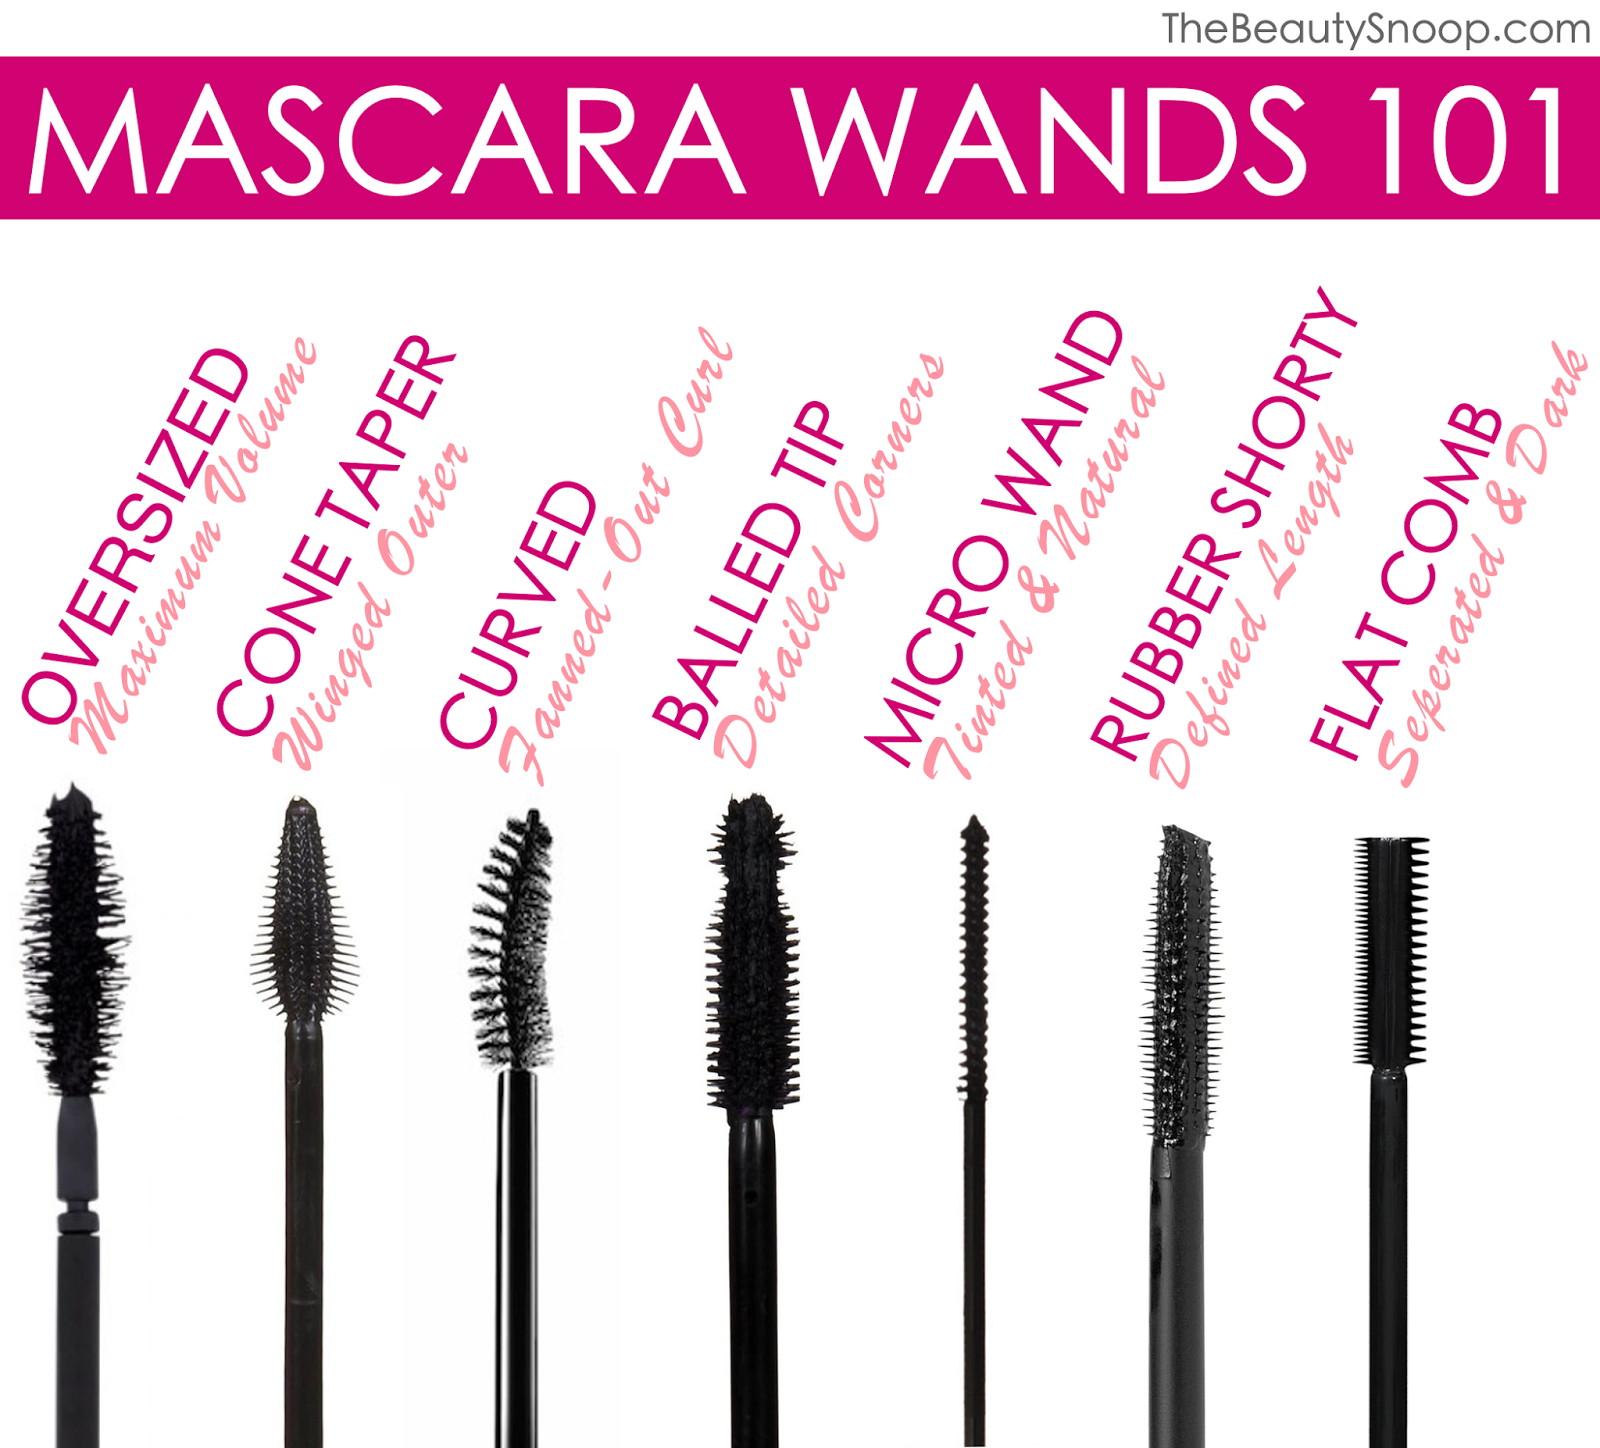 Best 25 mascara wands ideas on pinterest makeup tips for Mascara with comb wand